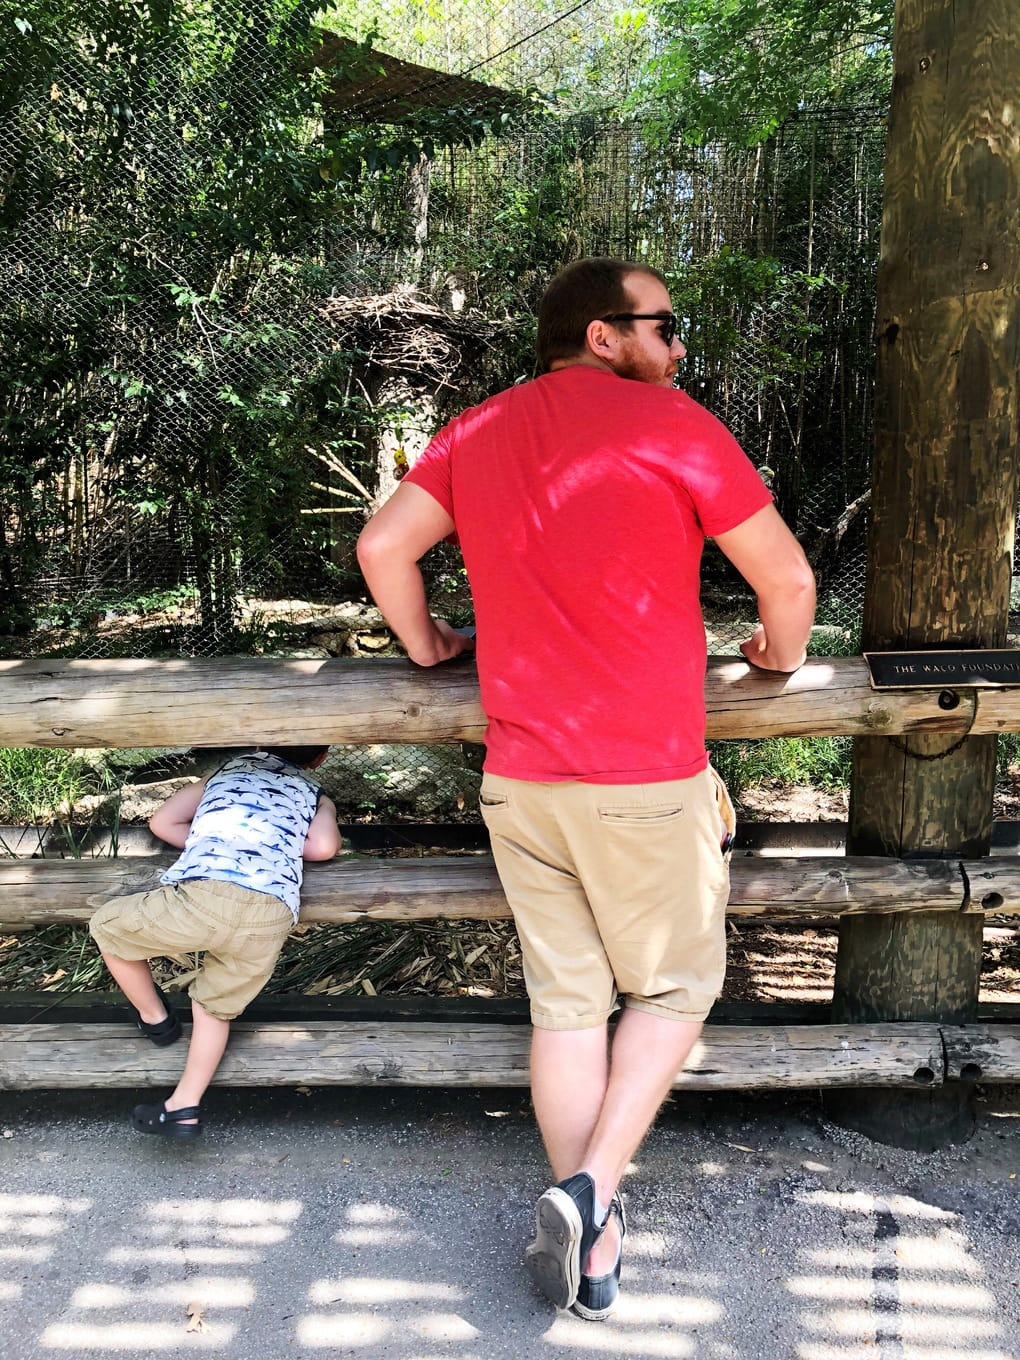 Things to do in Waco - Cameron Park Zoo